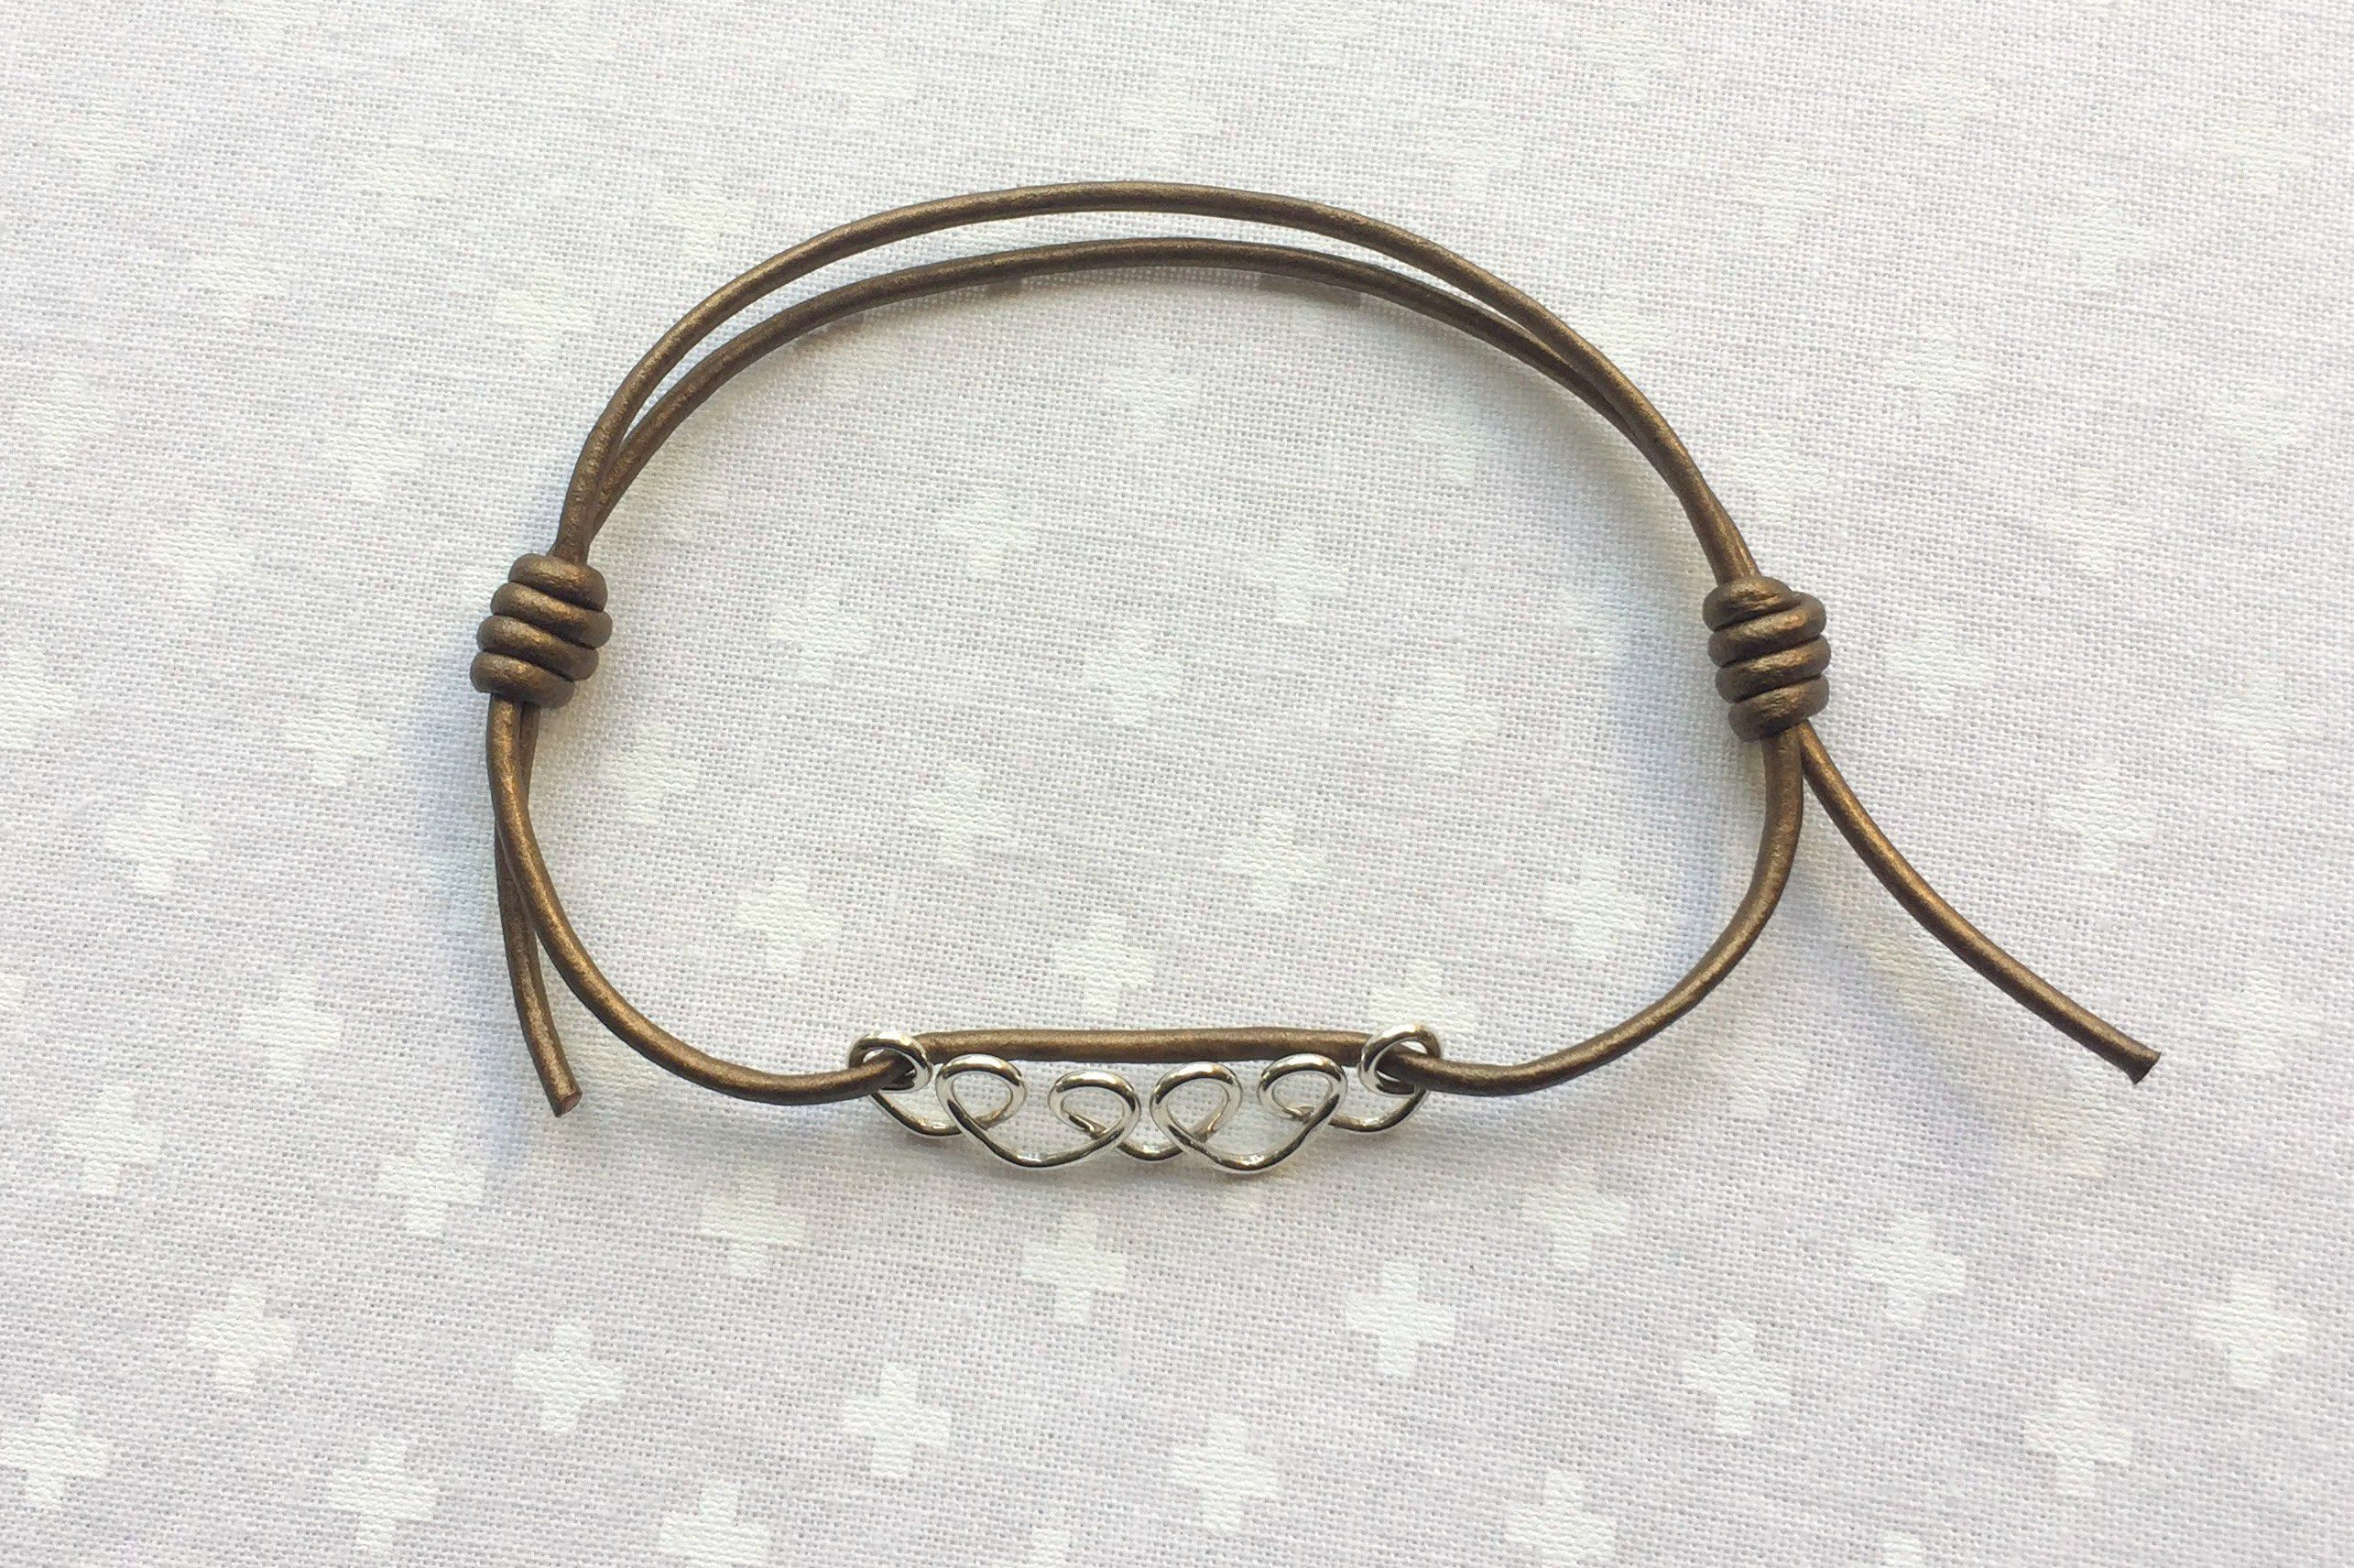 How To Make A Sliding Knot Bracelet